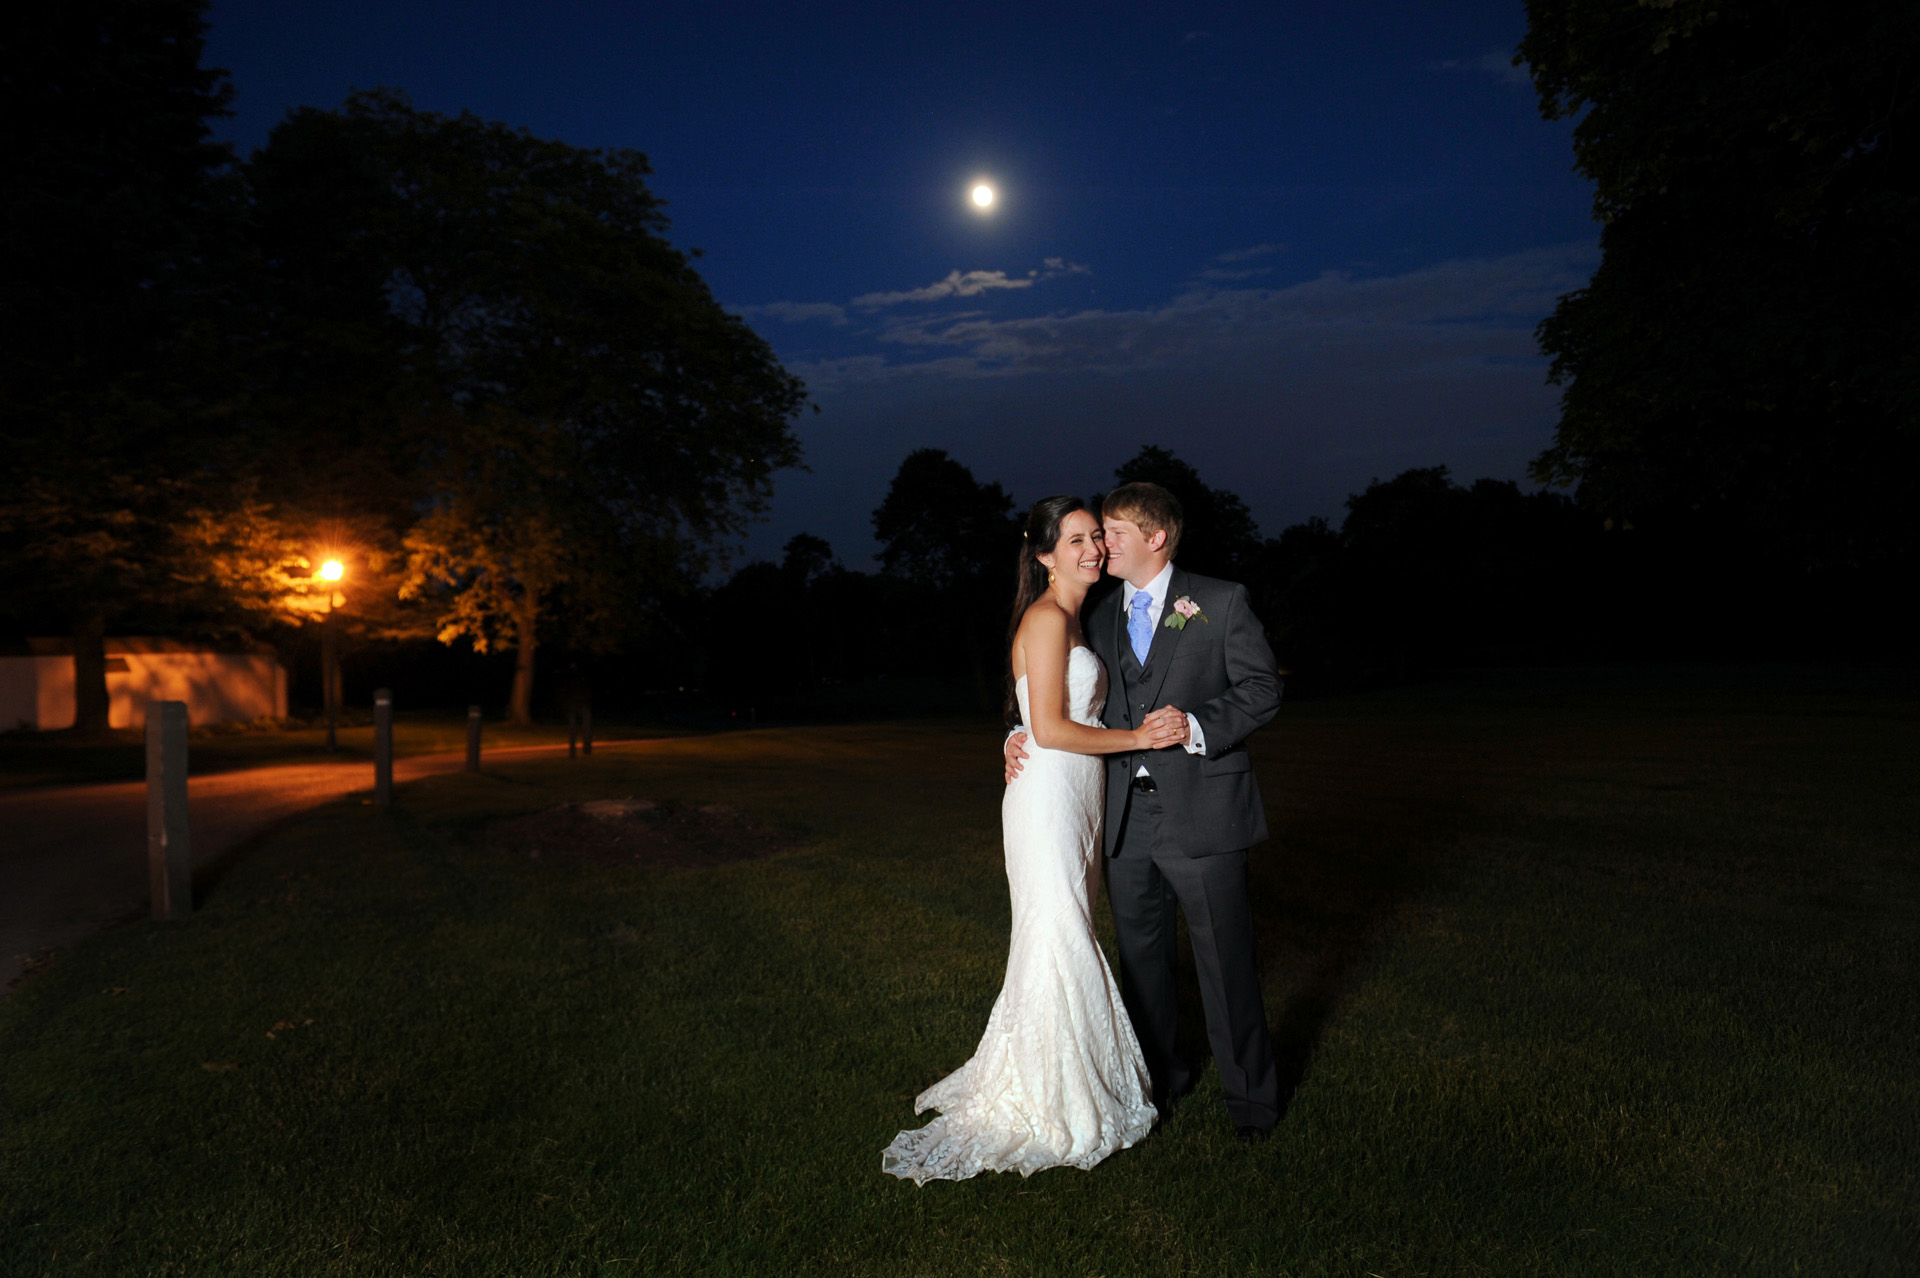 The Wedding couples who love candid wedding photos featuring fun photojournalistic moments wedding photographs in Romeo, Michigan highlights moving away from Addison Oaks to creating your unique wedding photography showing  the bride and groom on their full moonlit wedding night that emphasized photojournalist's moments.